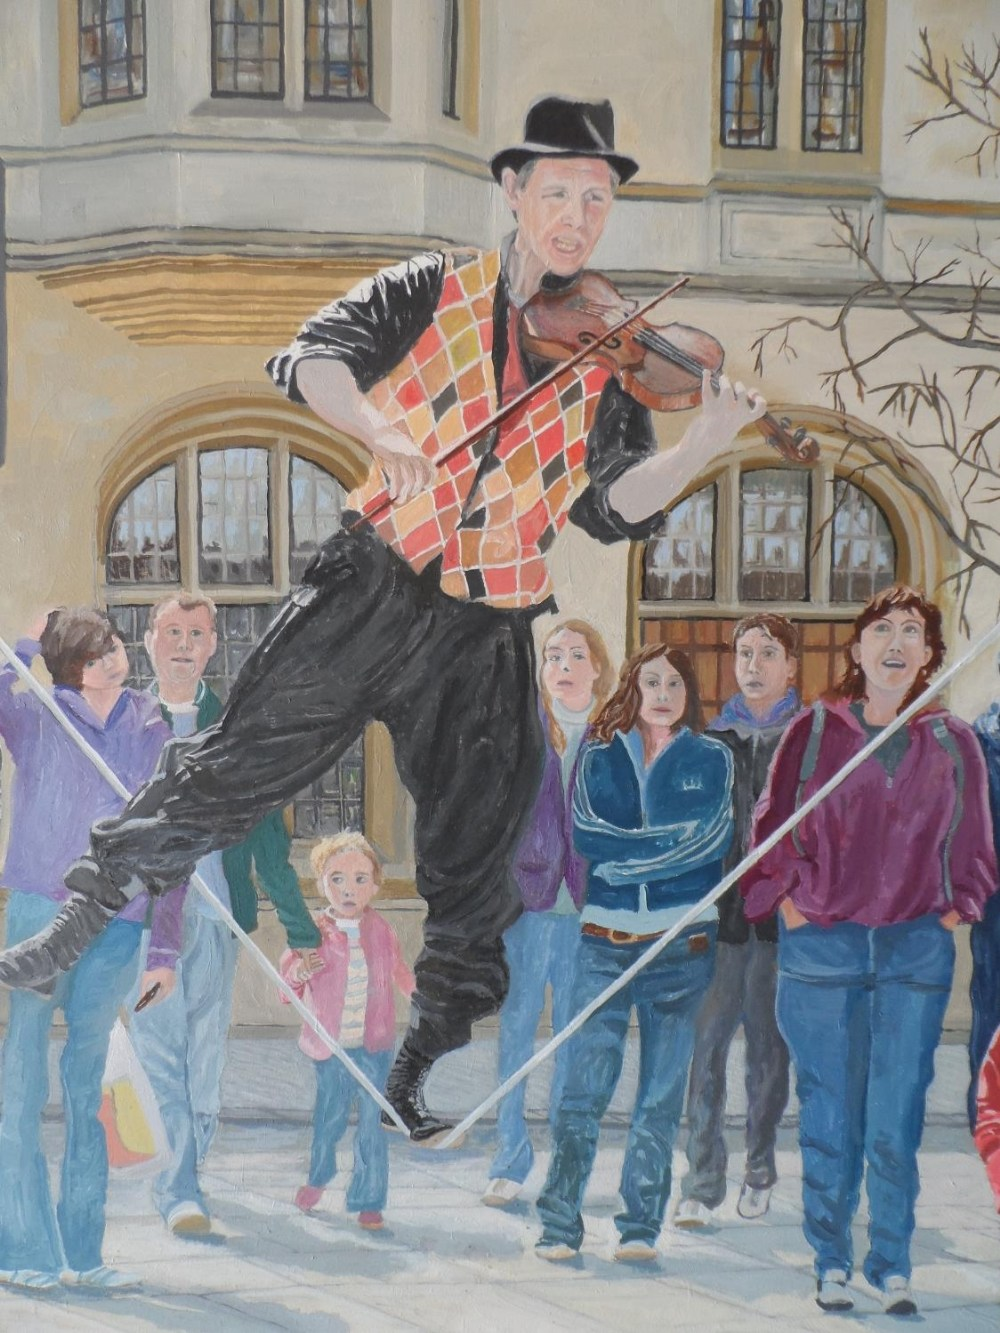 """Large Gerry Gibbs 2007 oil on board, """"The entertainer"""", unframed, signed and dated, 61 x 71 cm - Image 4 of 6"""